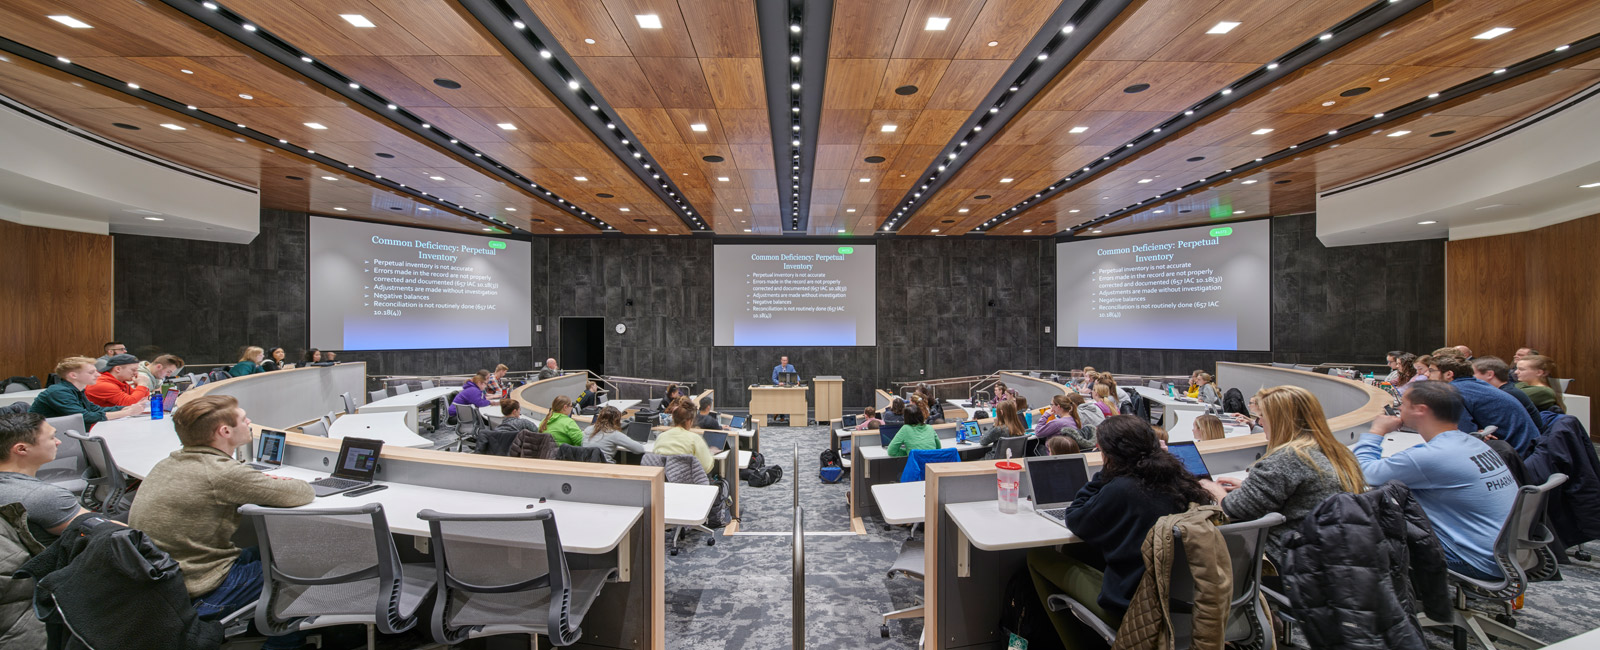 University of Iowa – College of Pharmacy Lecture Hall